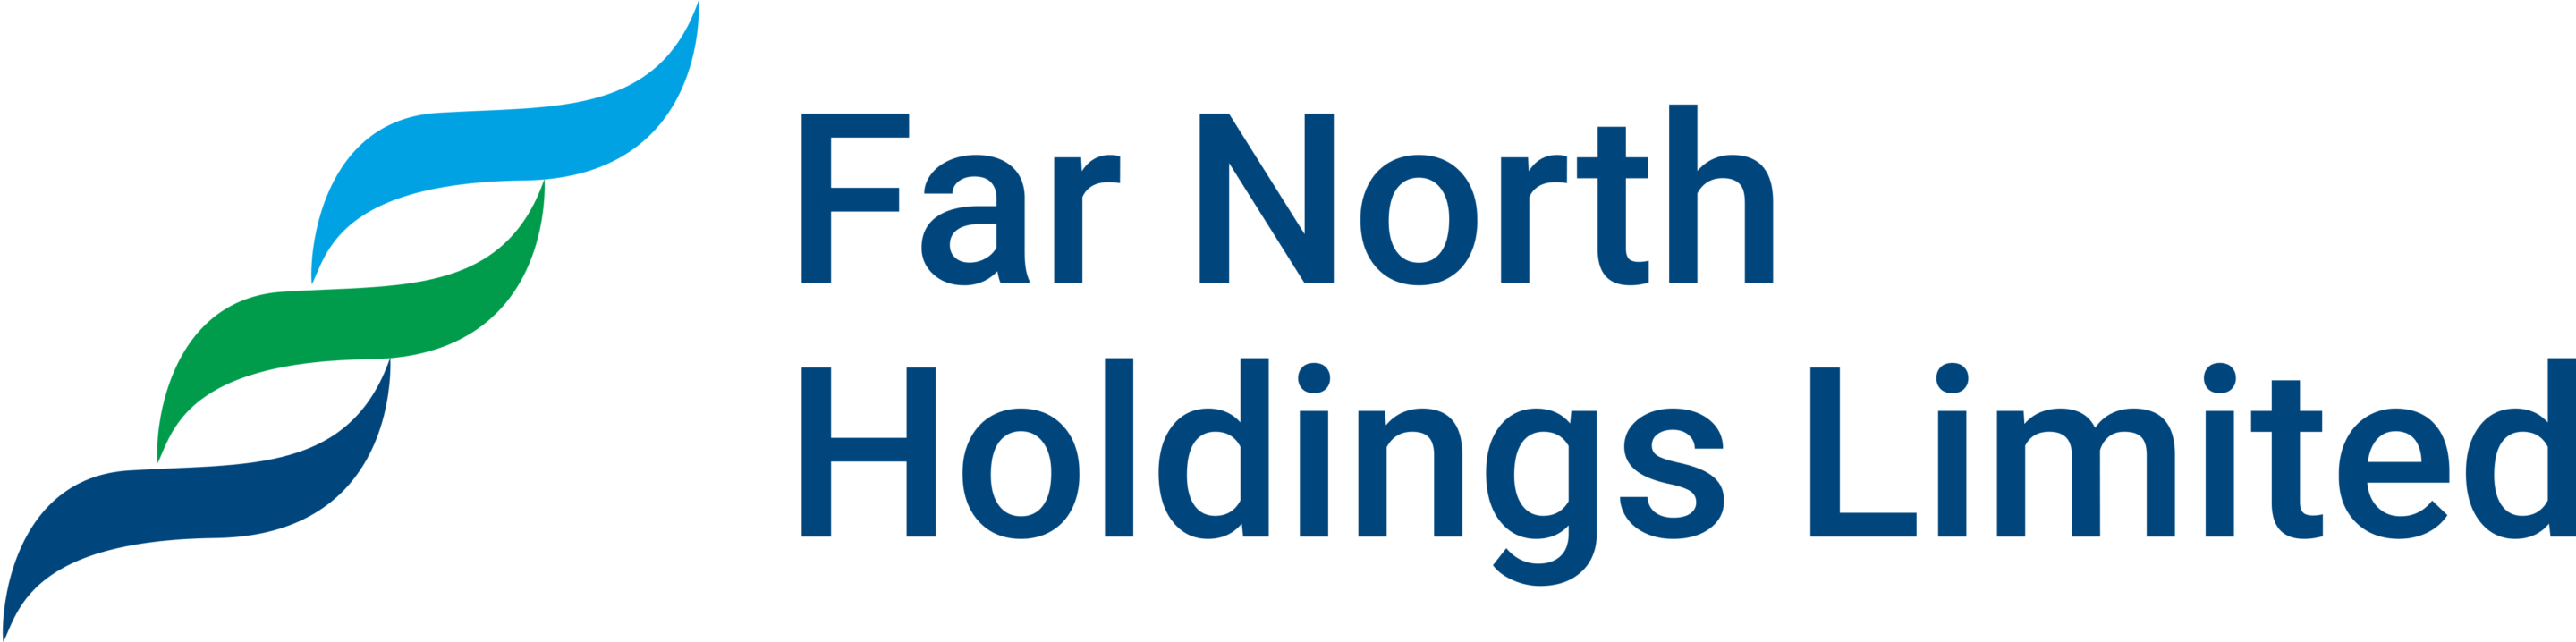 Far North Holdings Limited